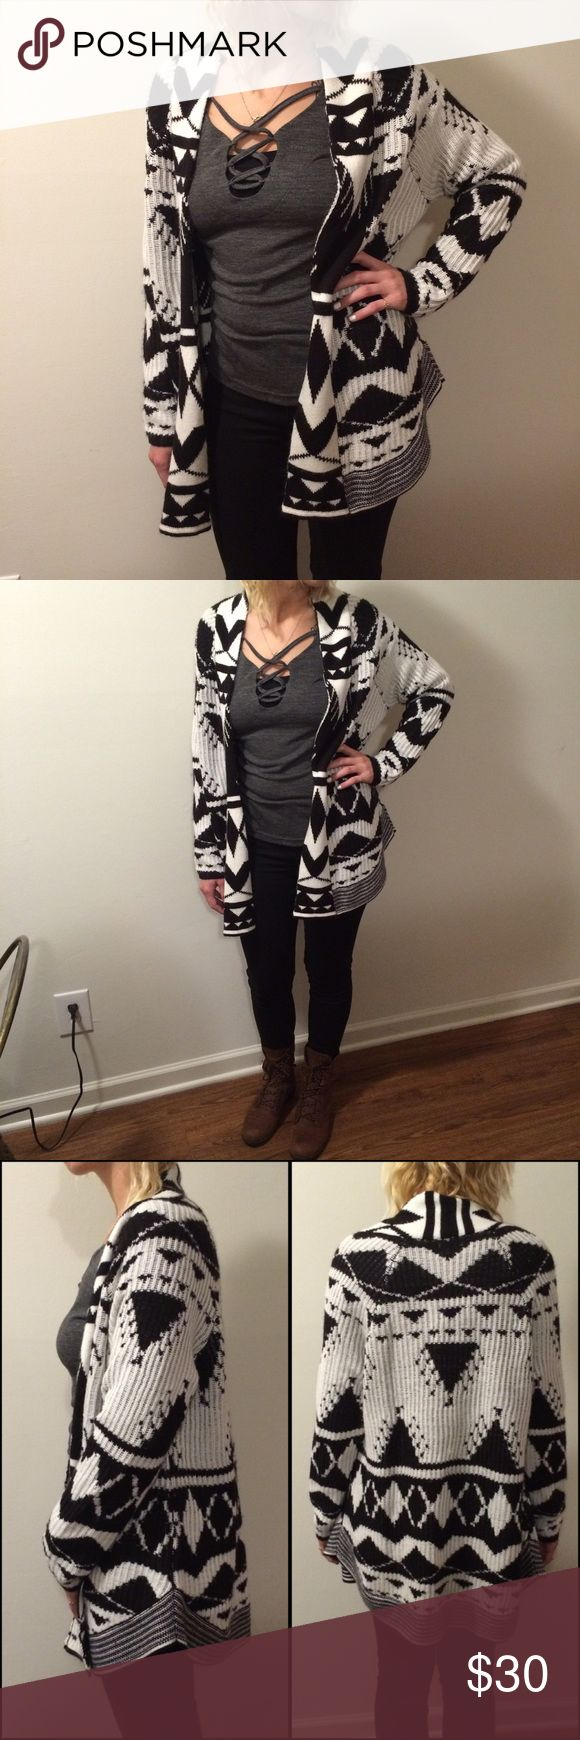 """ND Patterned Knit Cardigan EUC! Like new! Worn once. Super soft, cozy, and adorable! Really cool black & white pattern. The exterior is a defined knit style, whereas the interior is a soft, smooth style. The sides are an attractive scalloped design. Unique piece! 100% Acrylic. Length: 30"""". Bust laying flat: 22"""" arm inseam: 18"""". Fits oversized on a small-medium, model is that size. Ask questions. OFFERS WELCOME! new directions Sweaters Cardigans"""